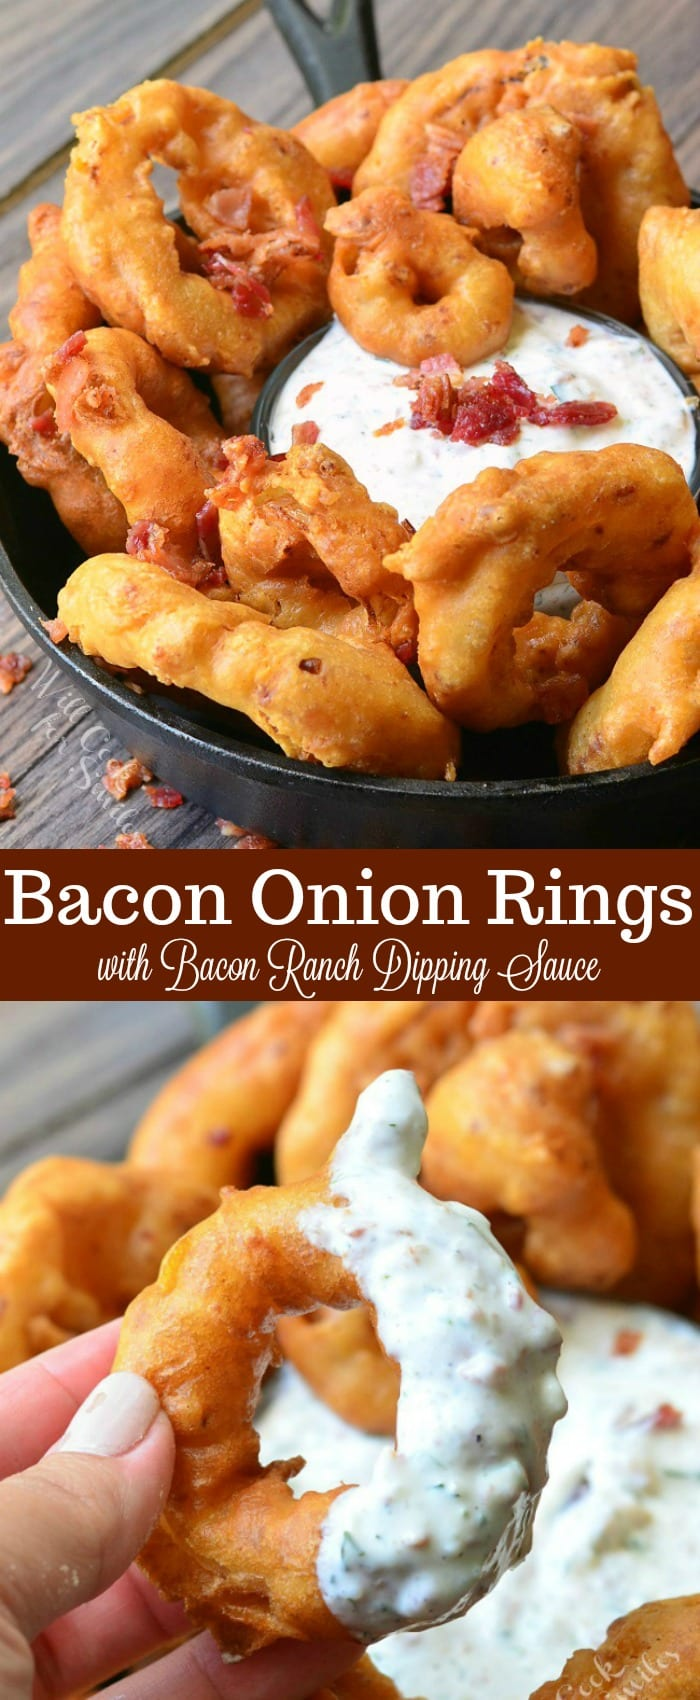 Bacon Onion Rings Recipe with Bacon Ranch Dipping Sauce. This fabulous appetizer is made with bacon bits mixed right into the batter and paired with easy, homemade bacon ranch dip. #appetizer #bacon #onionrings #dip #onions #snack